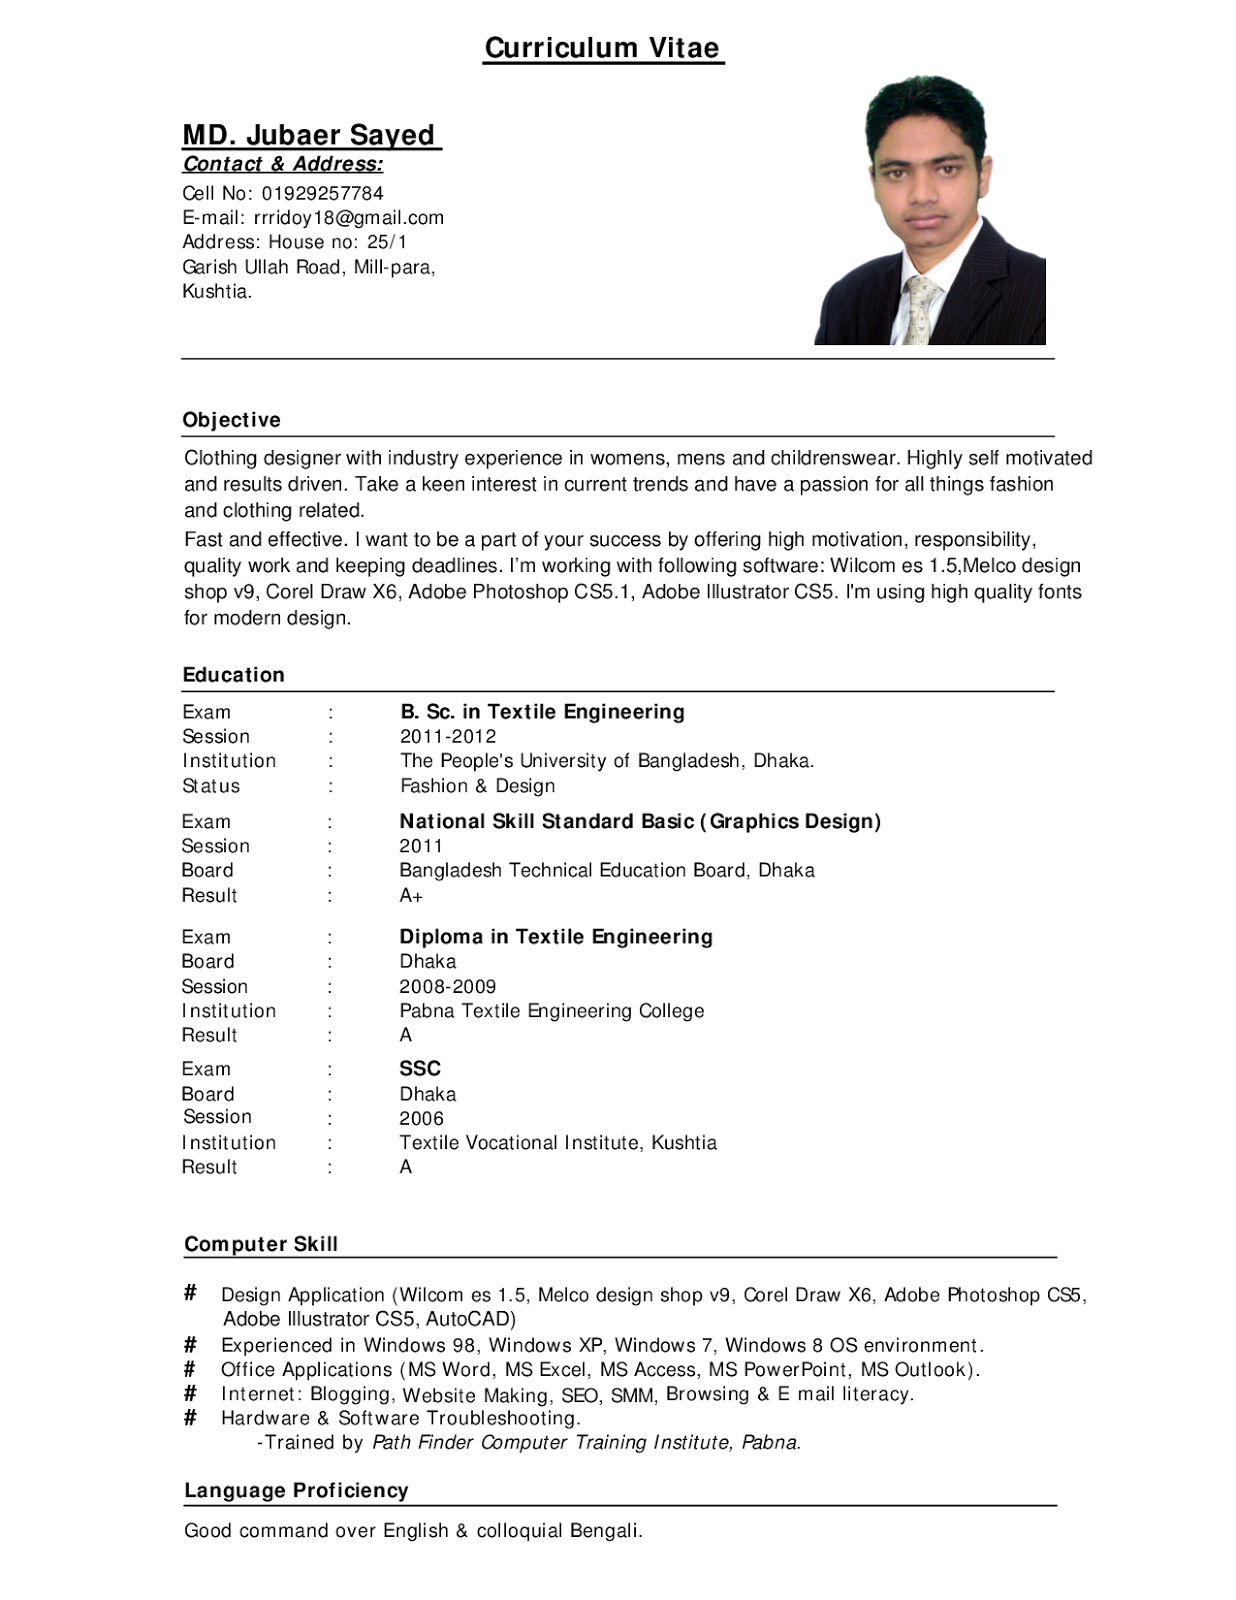 Resume Samples Pdf | Sample Resumes | Sample Resumes | Pinterest